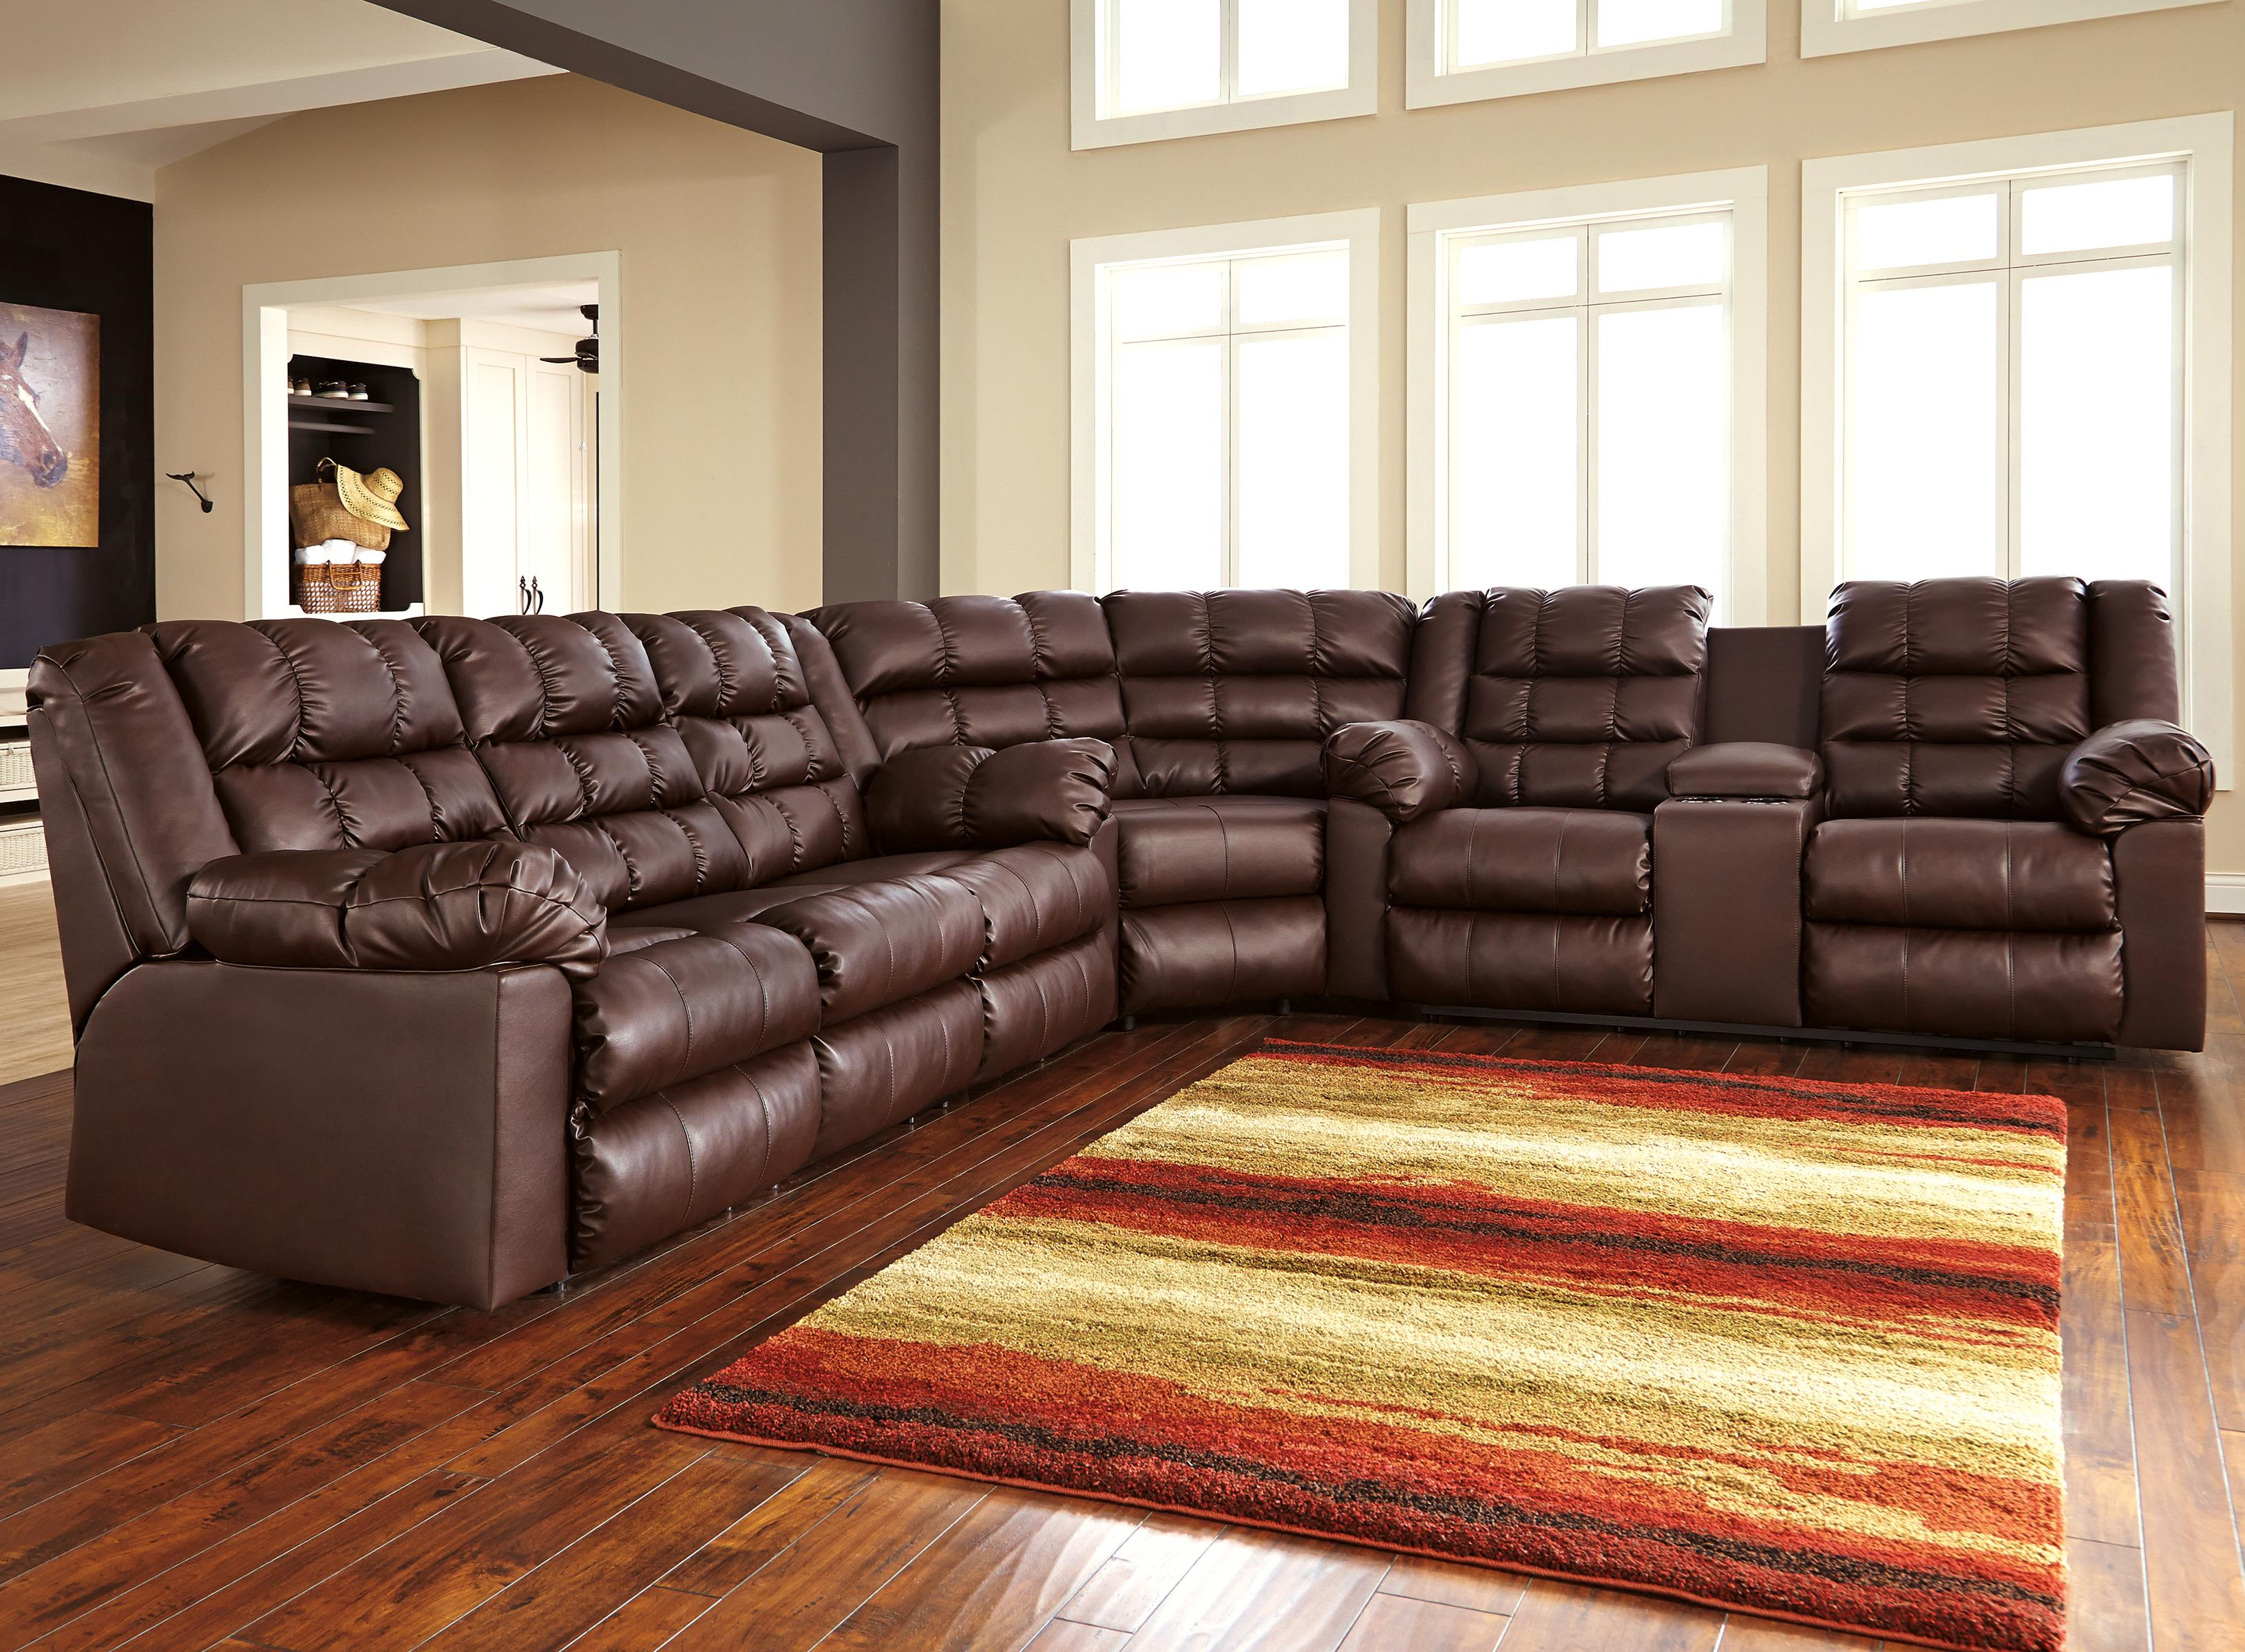 Signature Design by Ashley Brolayne DuraBlend® 3-Piece Reclining Sectional - Item Number: 8320288+77+94